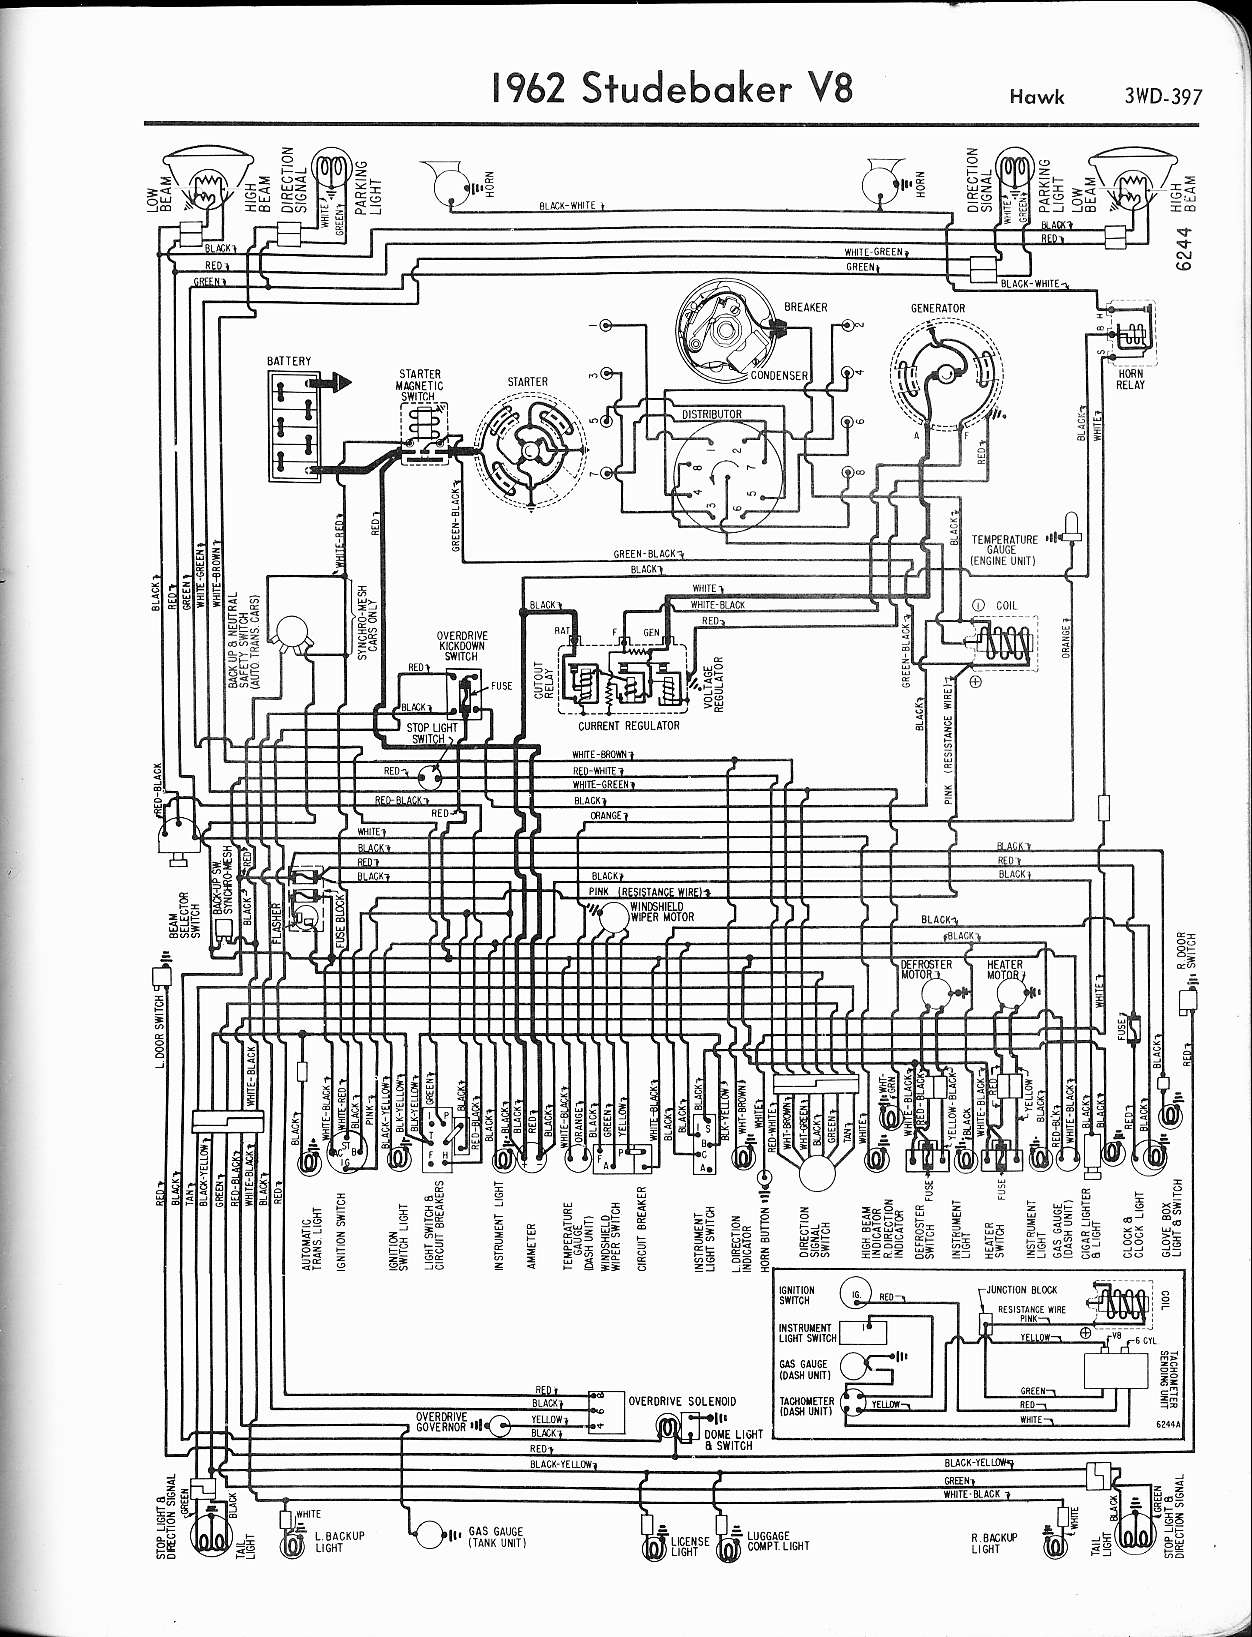 1963 avanti wiring diagram automotive wiring diagram u2022 rh nfluencer co 1976 Avanti 1968 Avanti